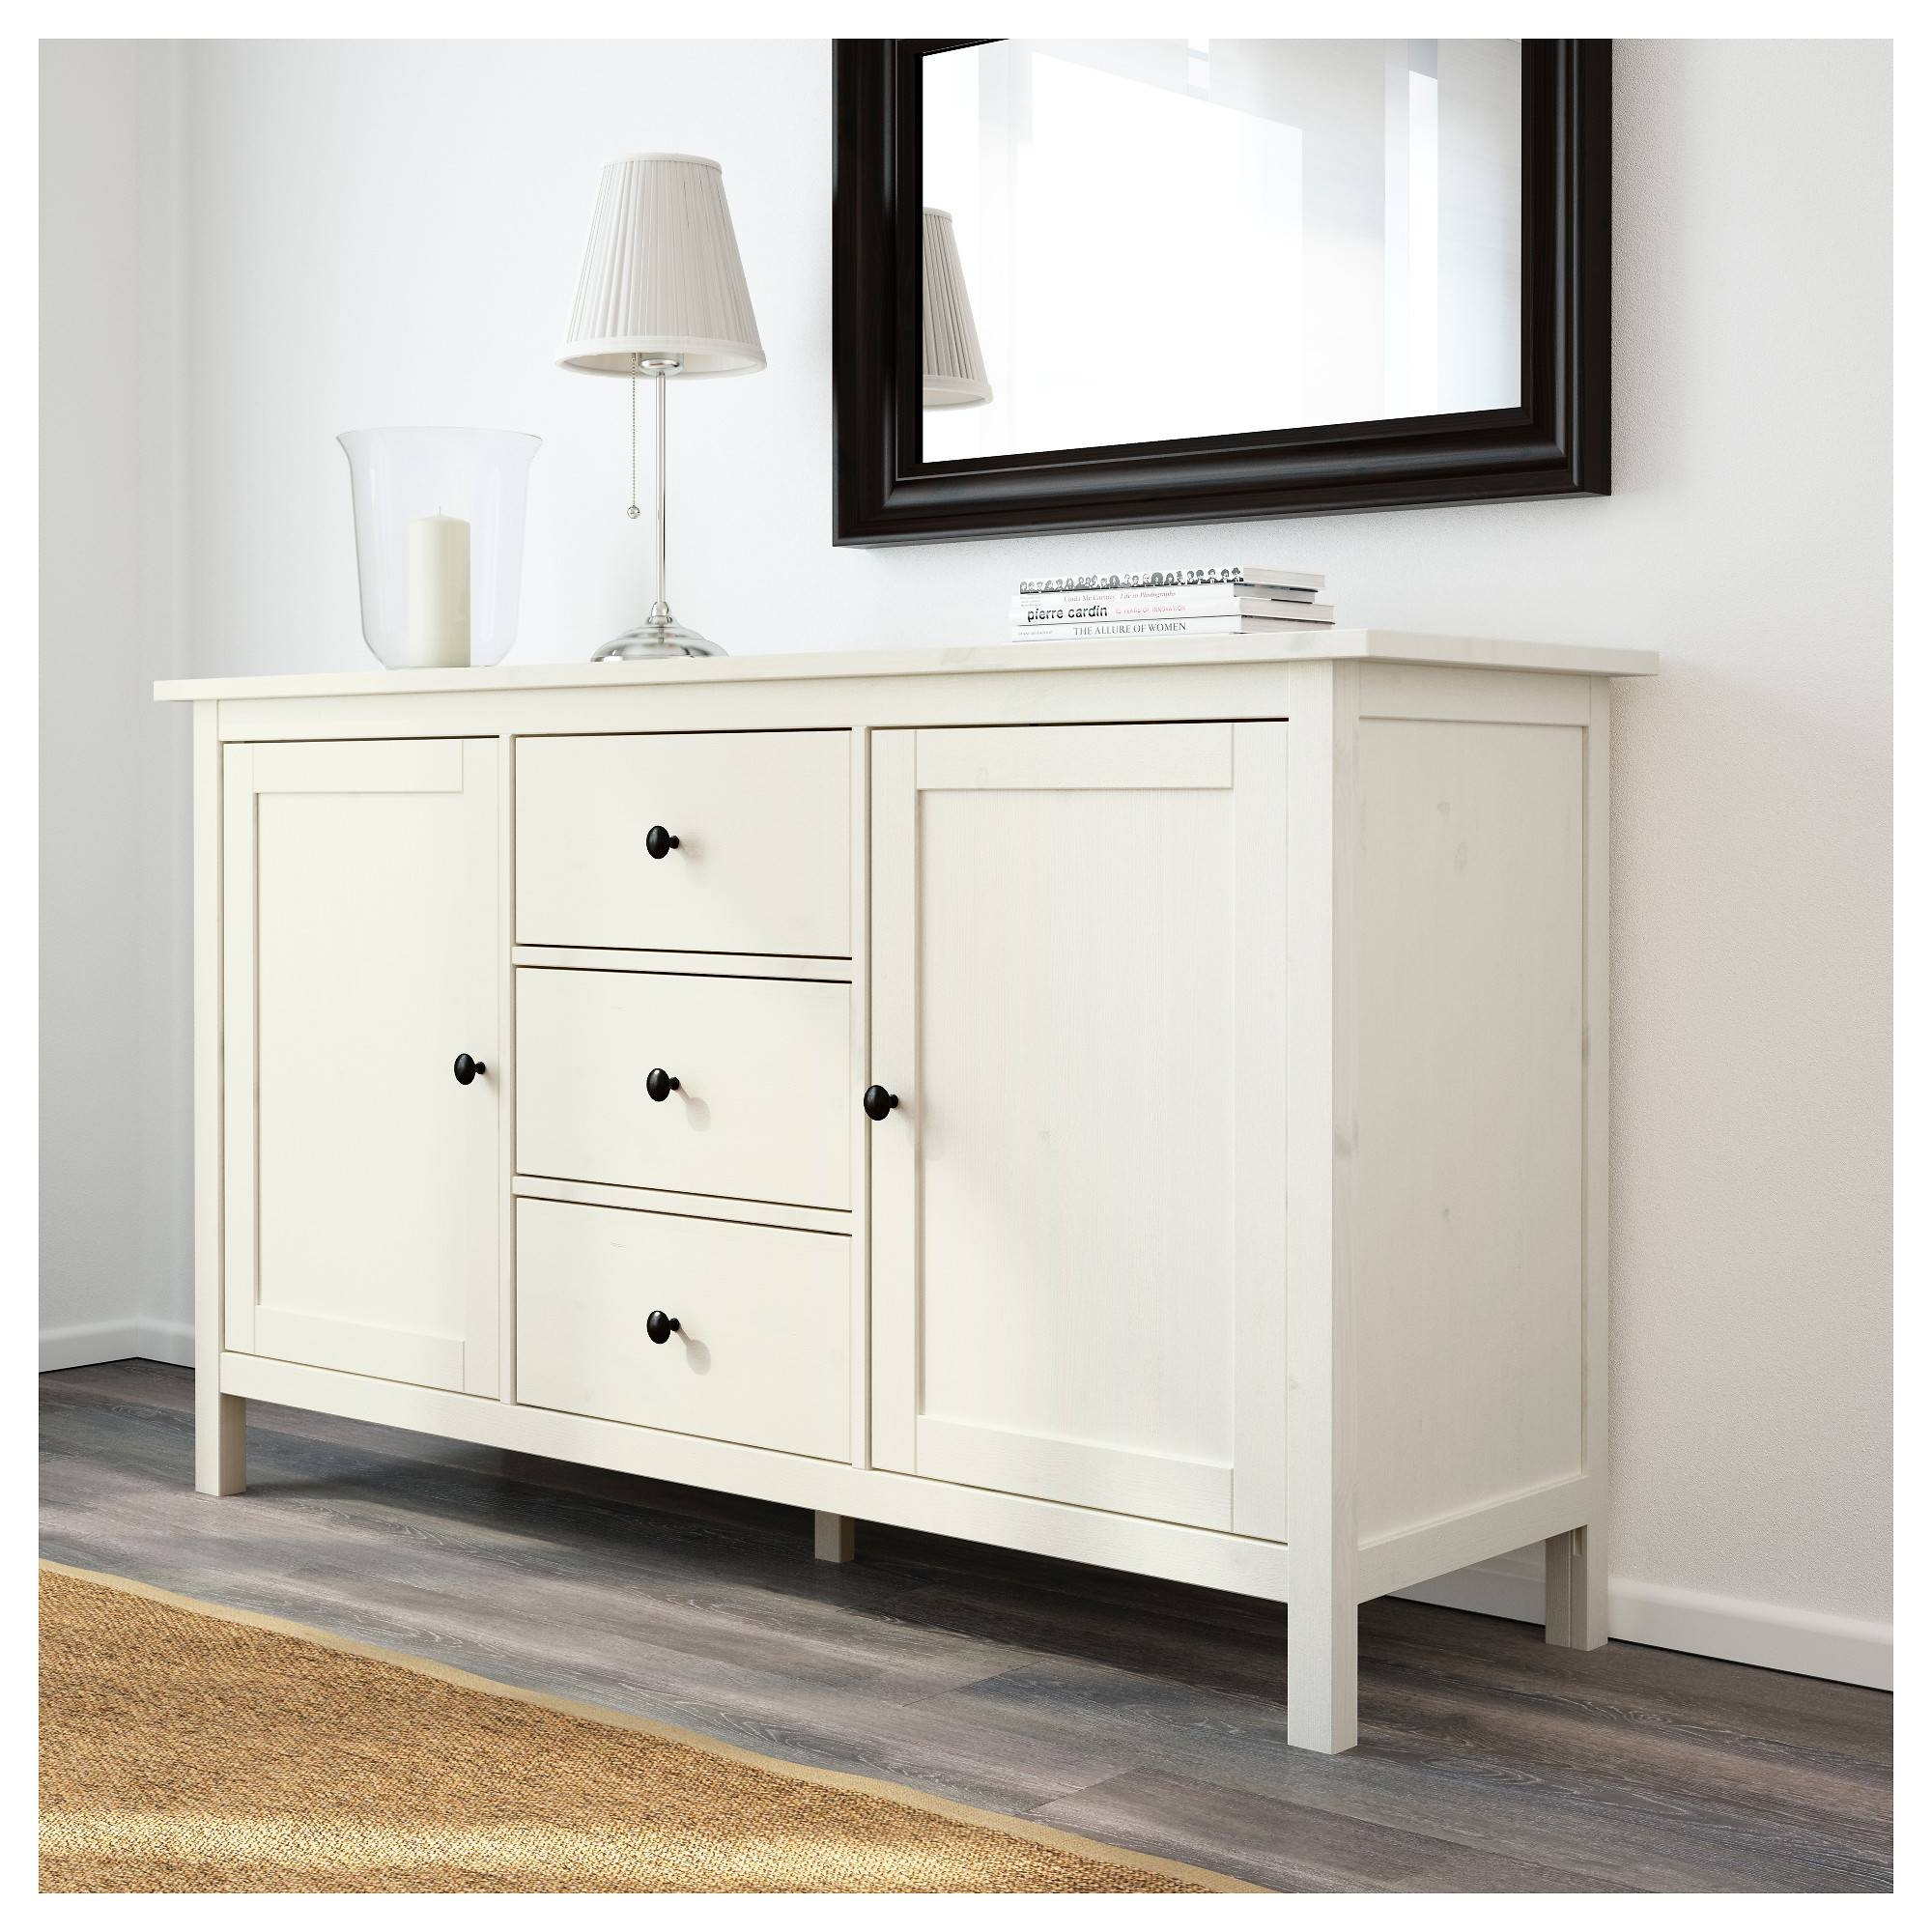 Hemnes Sideboard White Stain 157X88 Cm - Ikea for Ikea Hemnes Sideboards (Image 6 of 15)